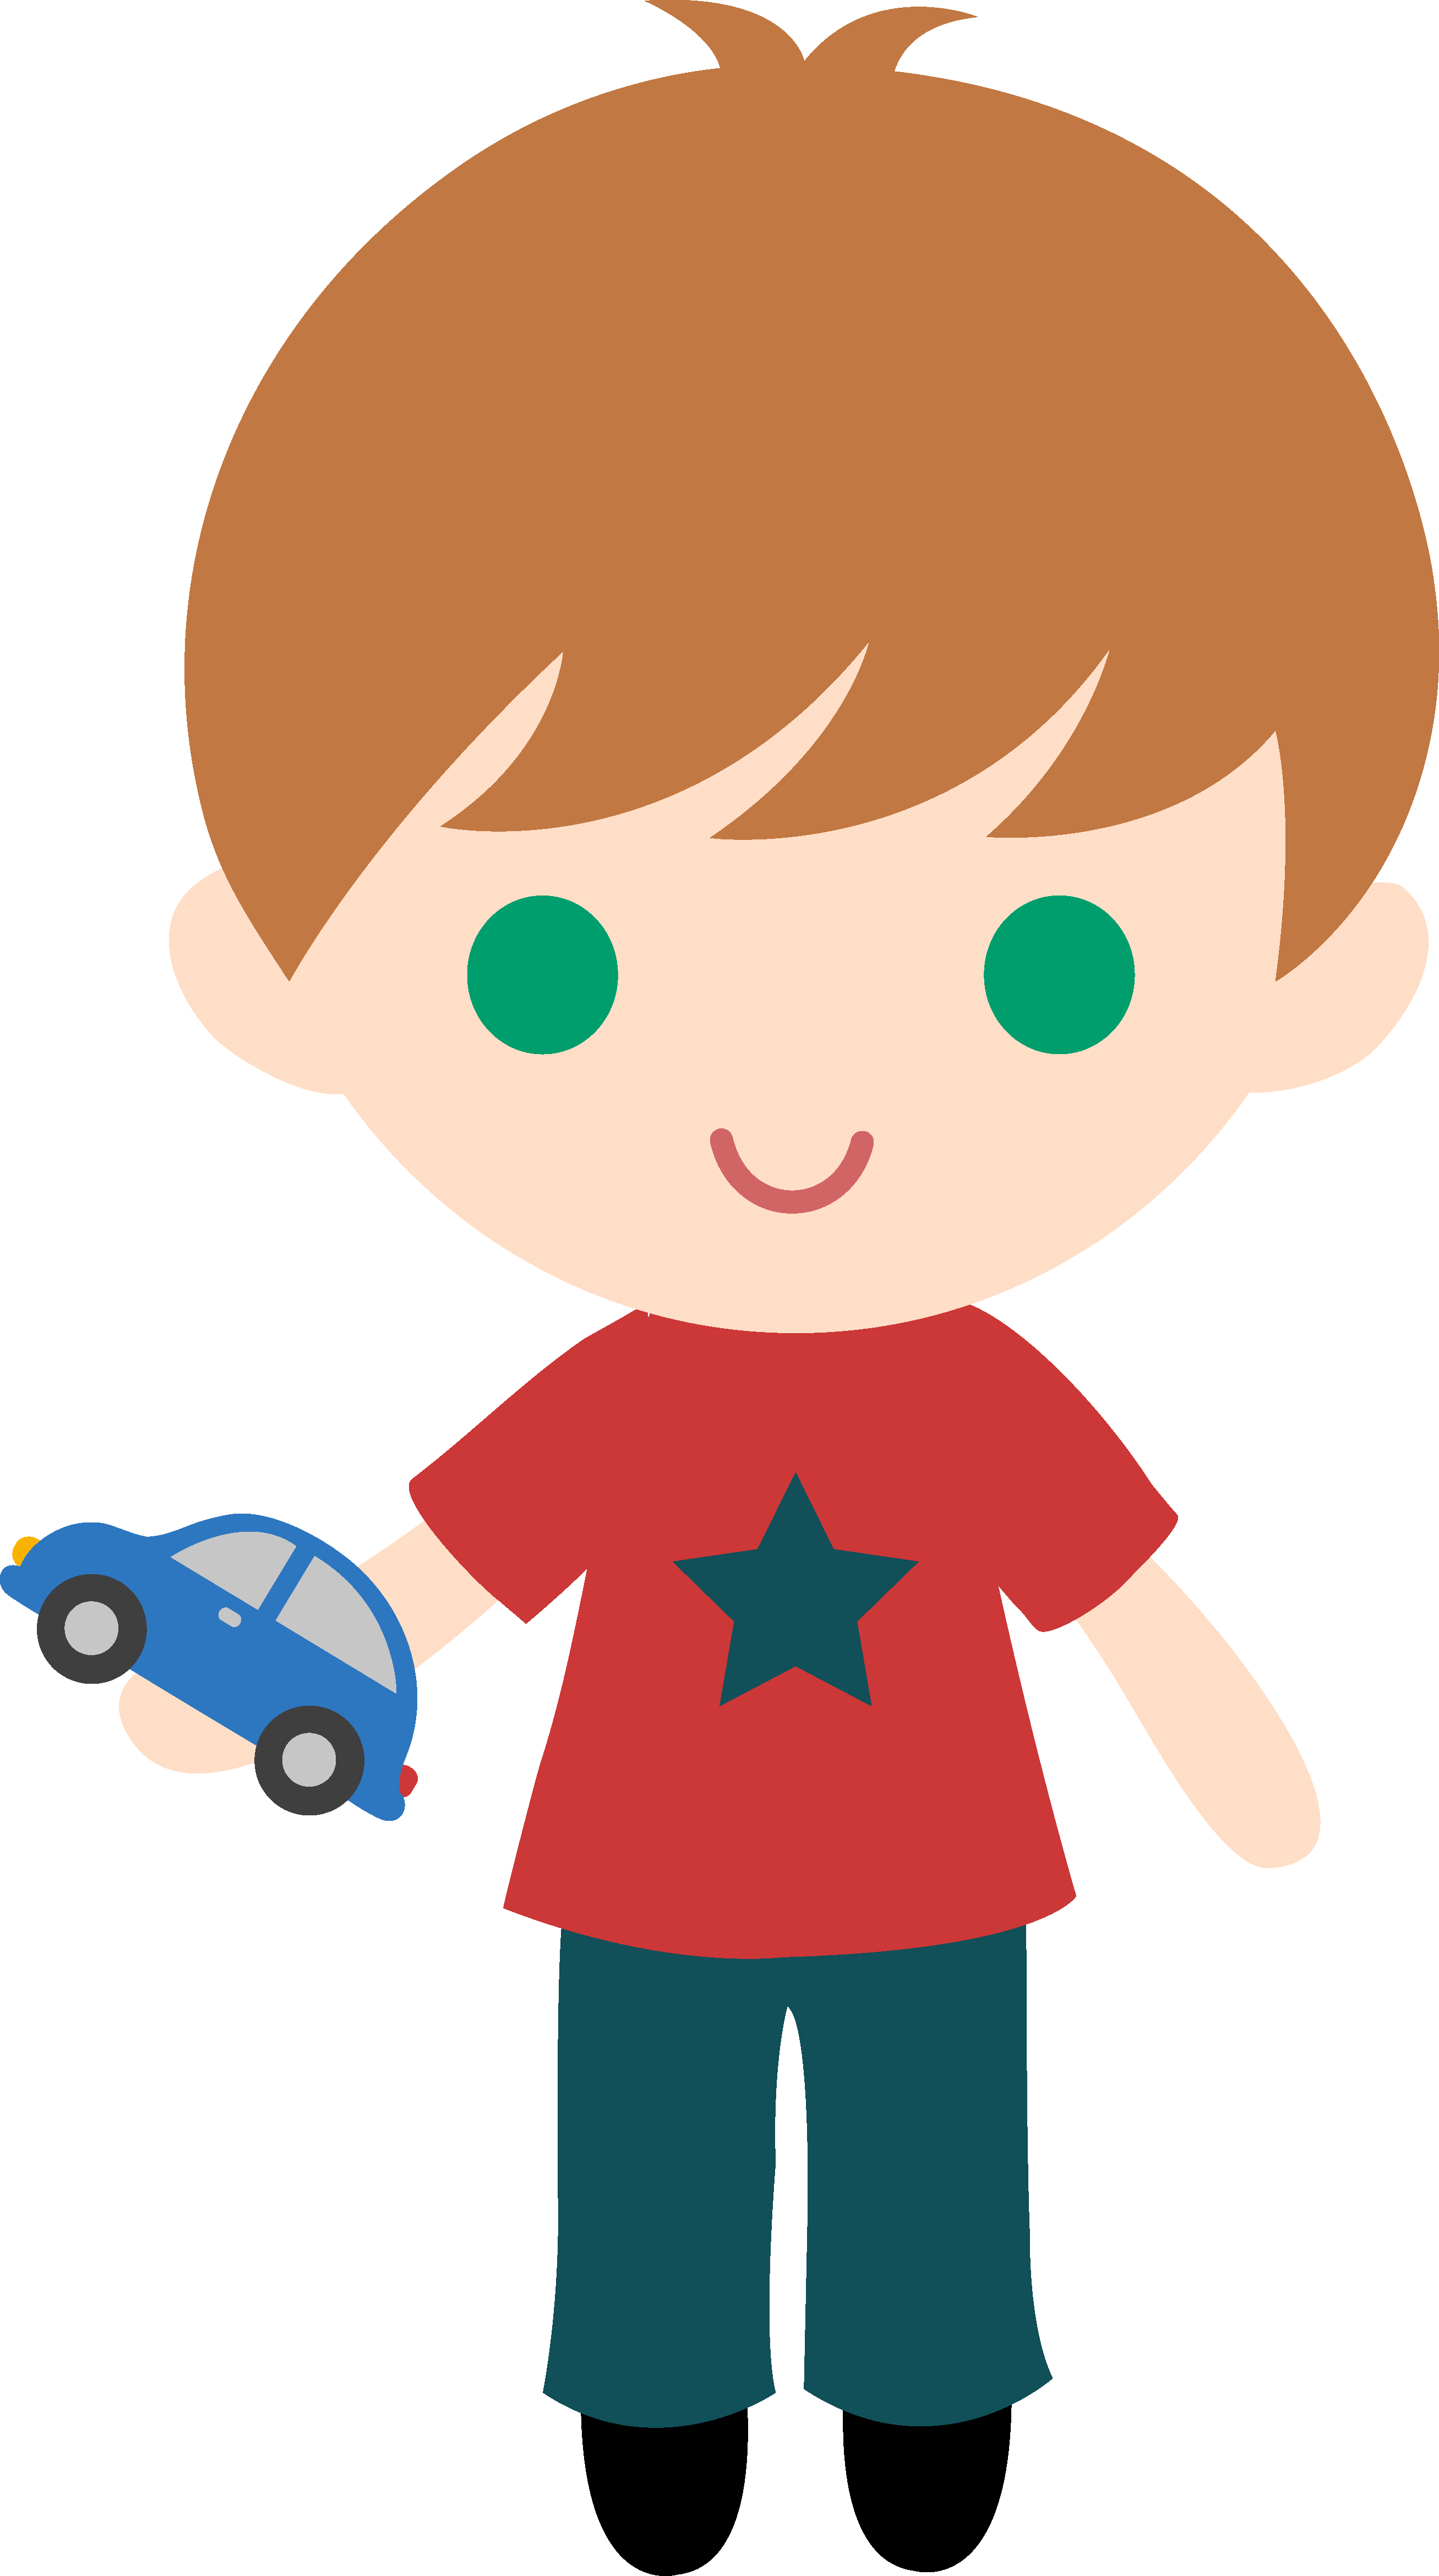 graphic free download Evade clip. Boy with toy car